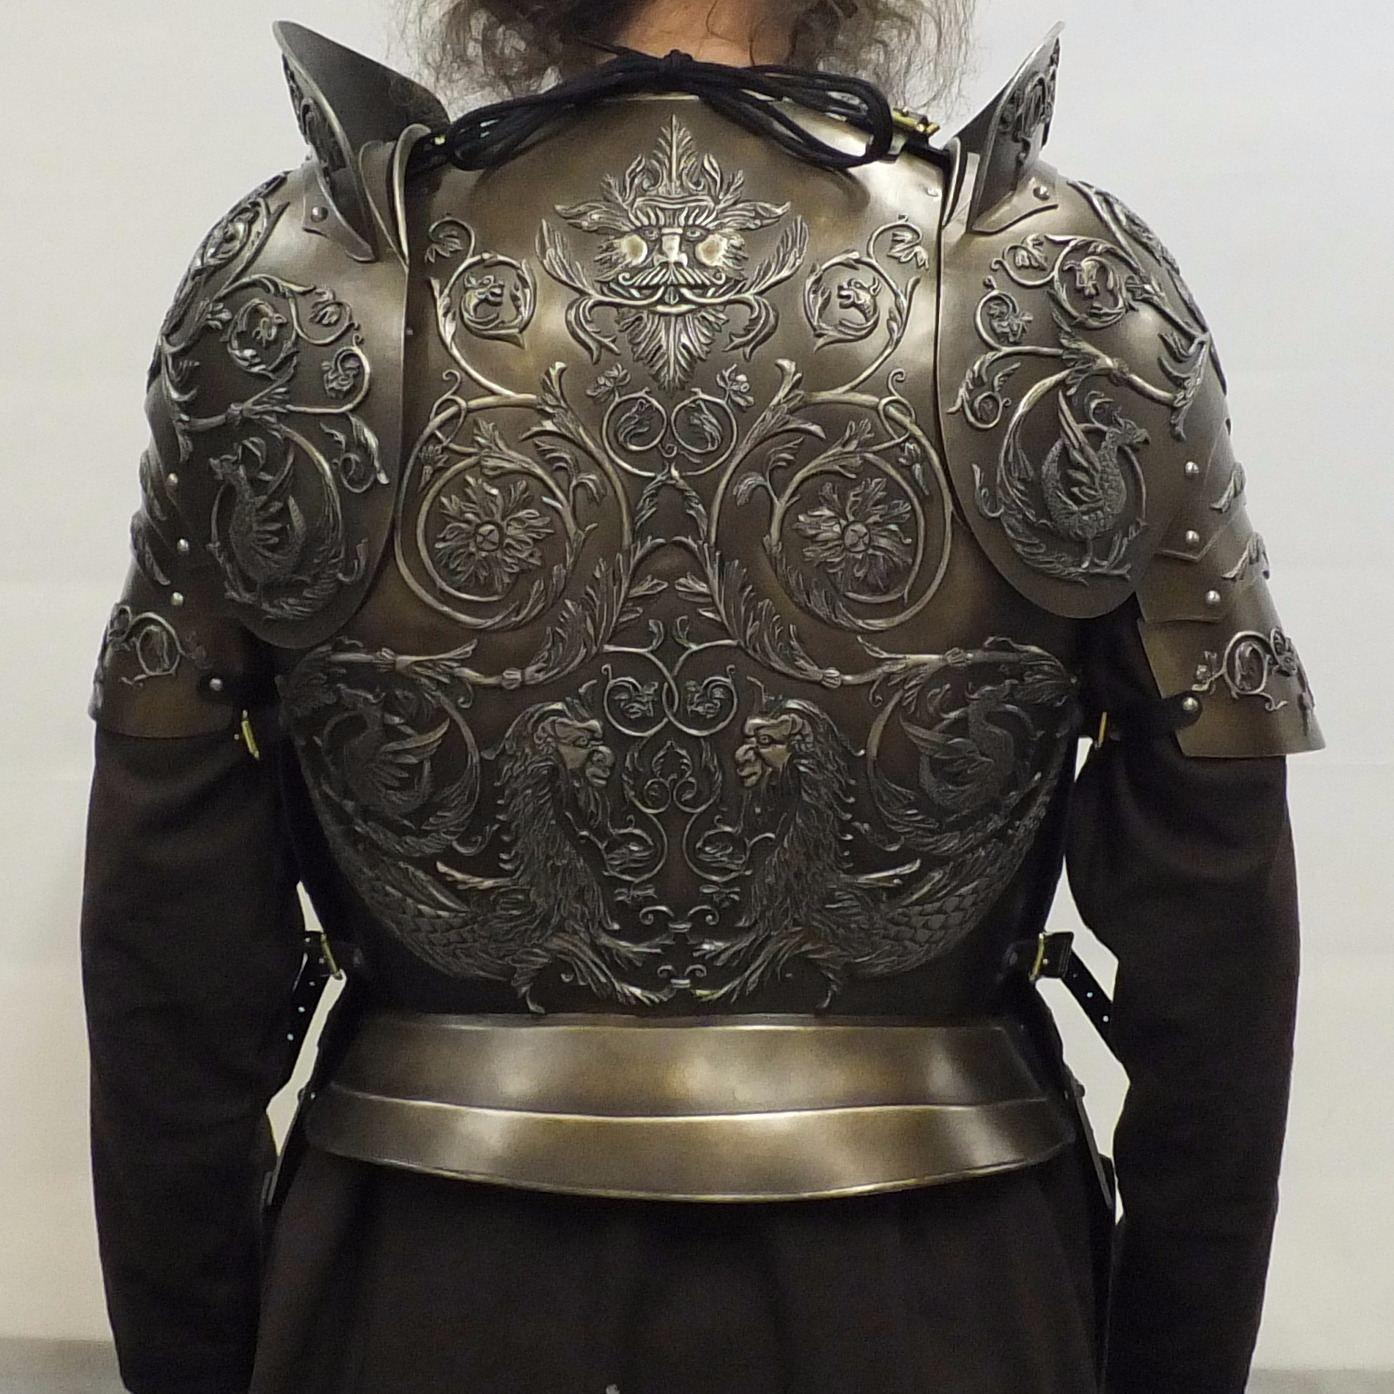 Negroli embossed larp armour set close up